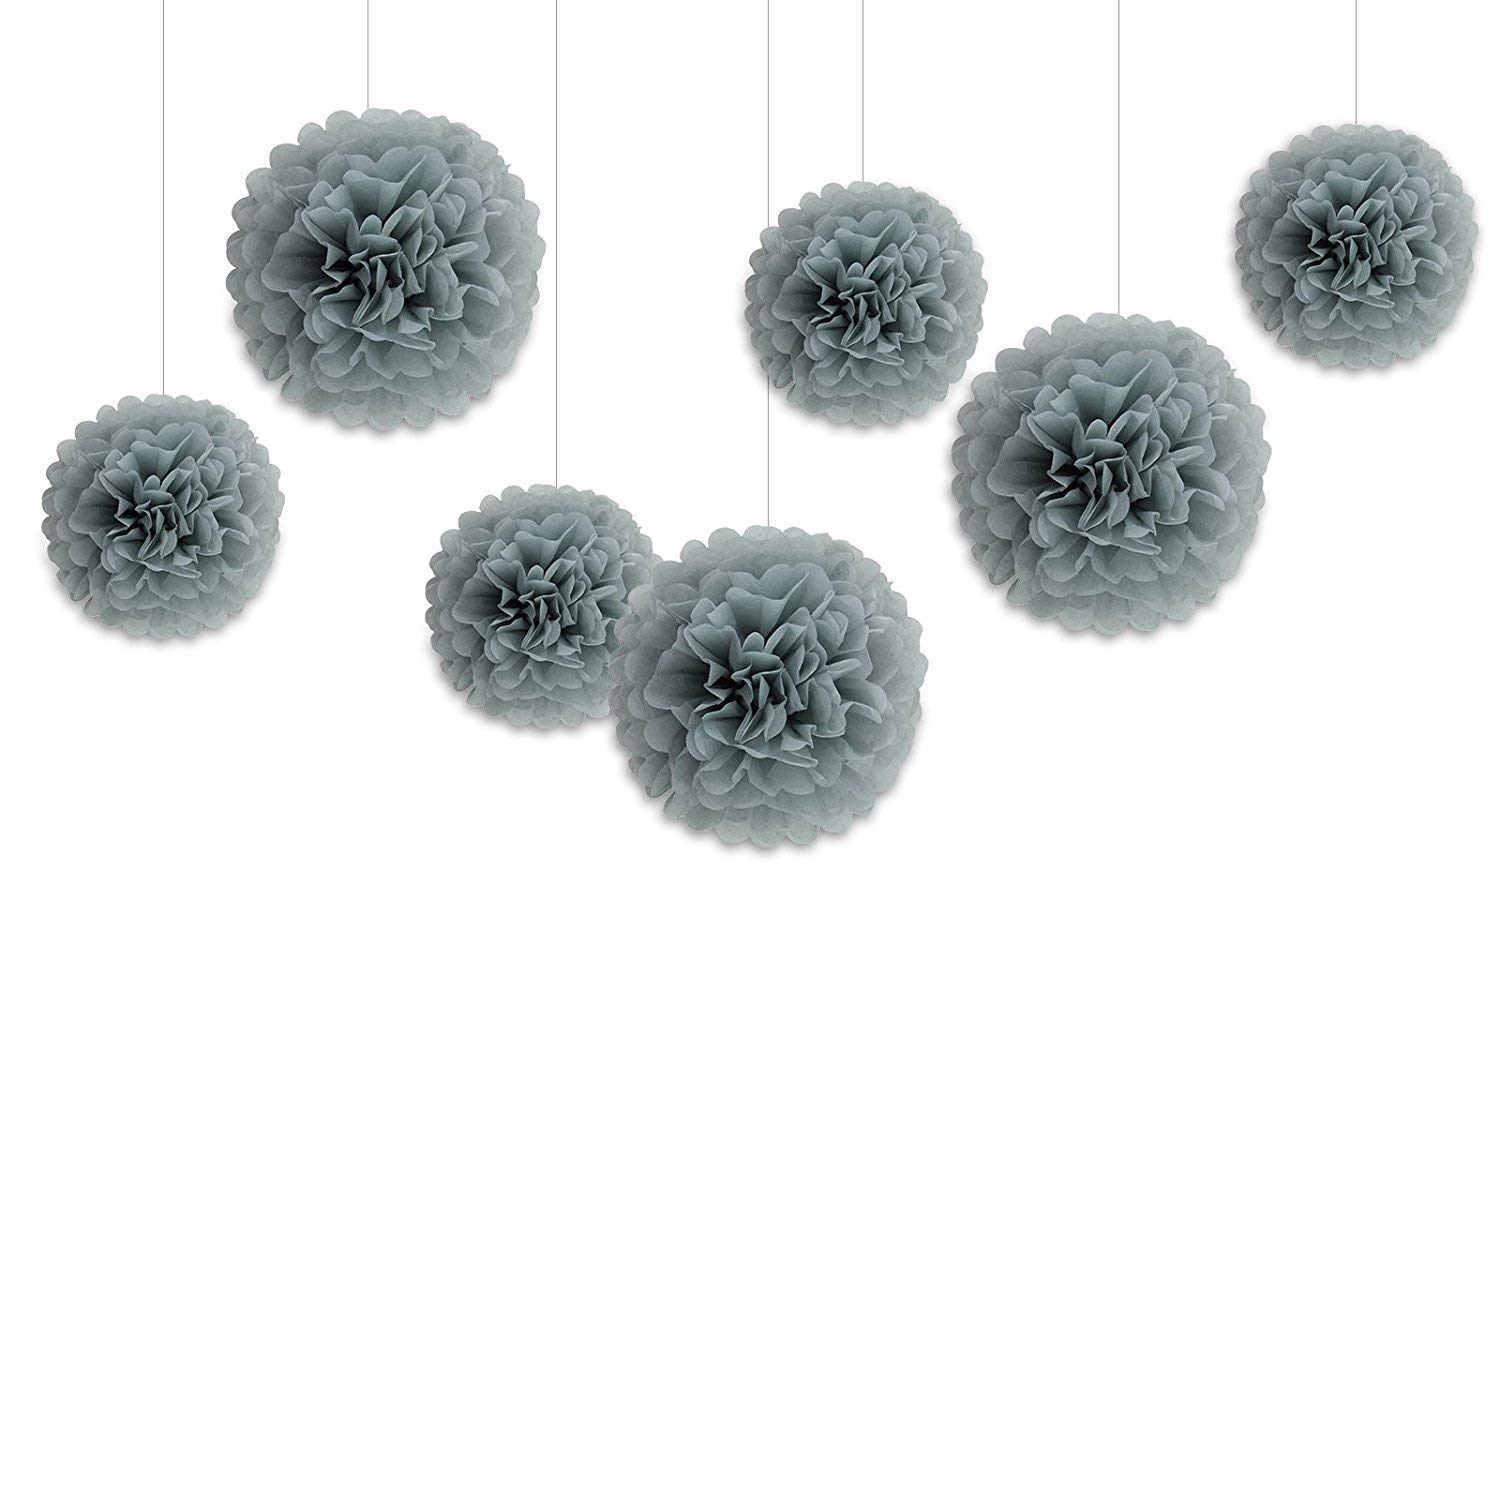 Hanzen 5 Pcs Mixed 10'' 14'' Gray Tissue Paper Pom Poms Flower Balls for Birthday Wedding Party Baby Shower Outdoor Decorations (Gray)